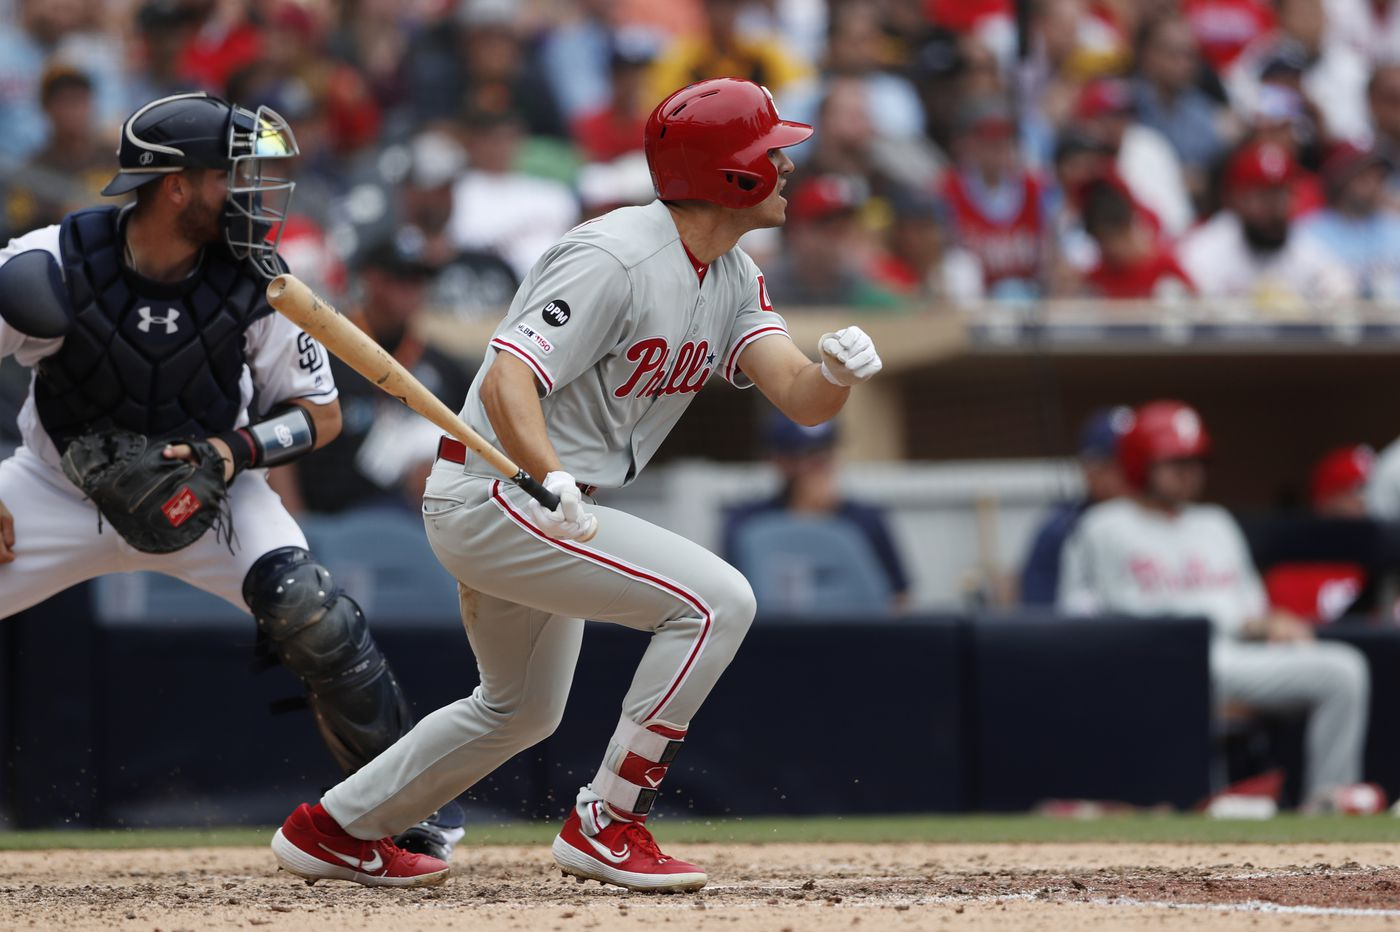 Adam Haseley's first hit ends Phillies' strange road trip with a come-from-behind win over Padres